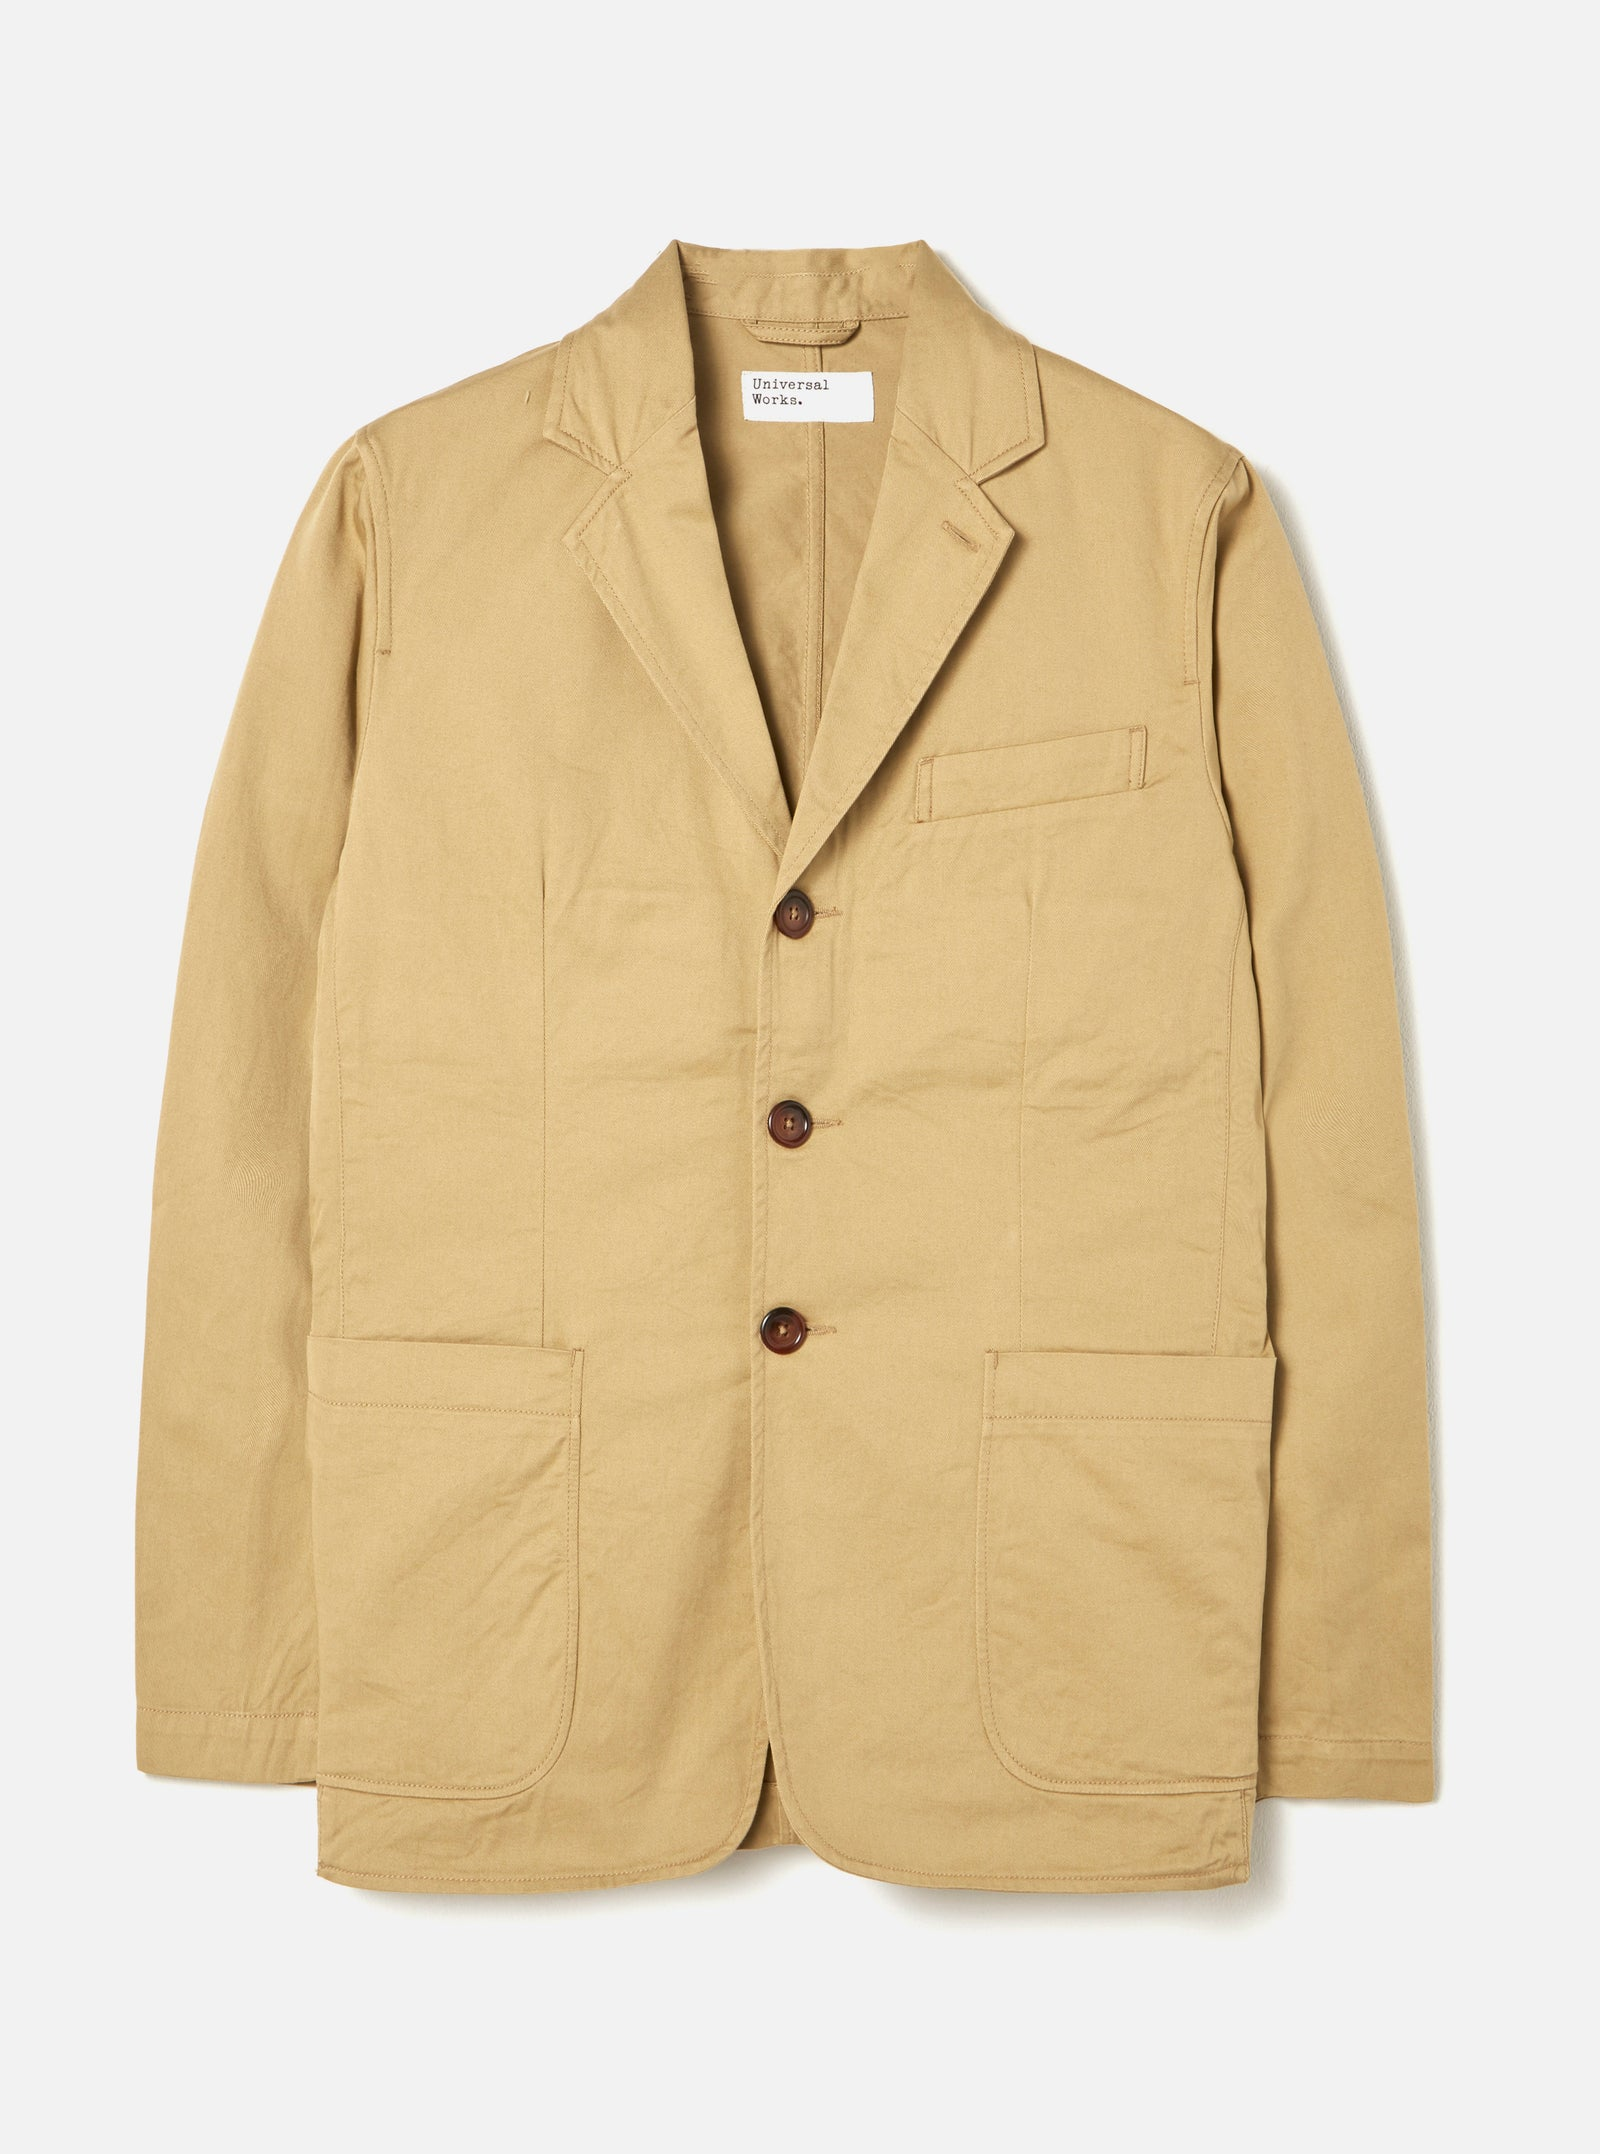 Universal Works London Jacket in Sand Twill